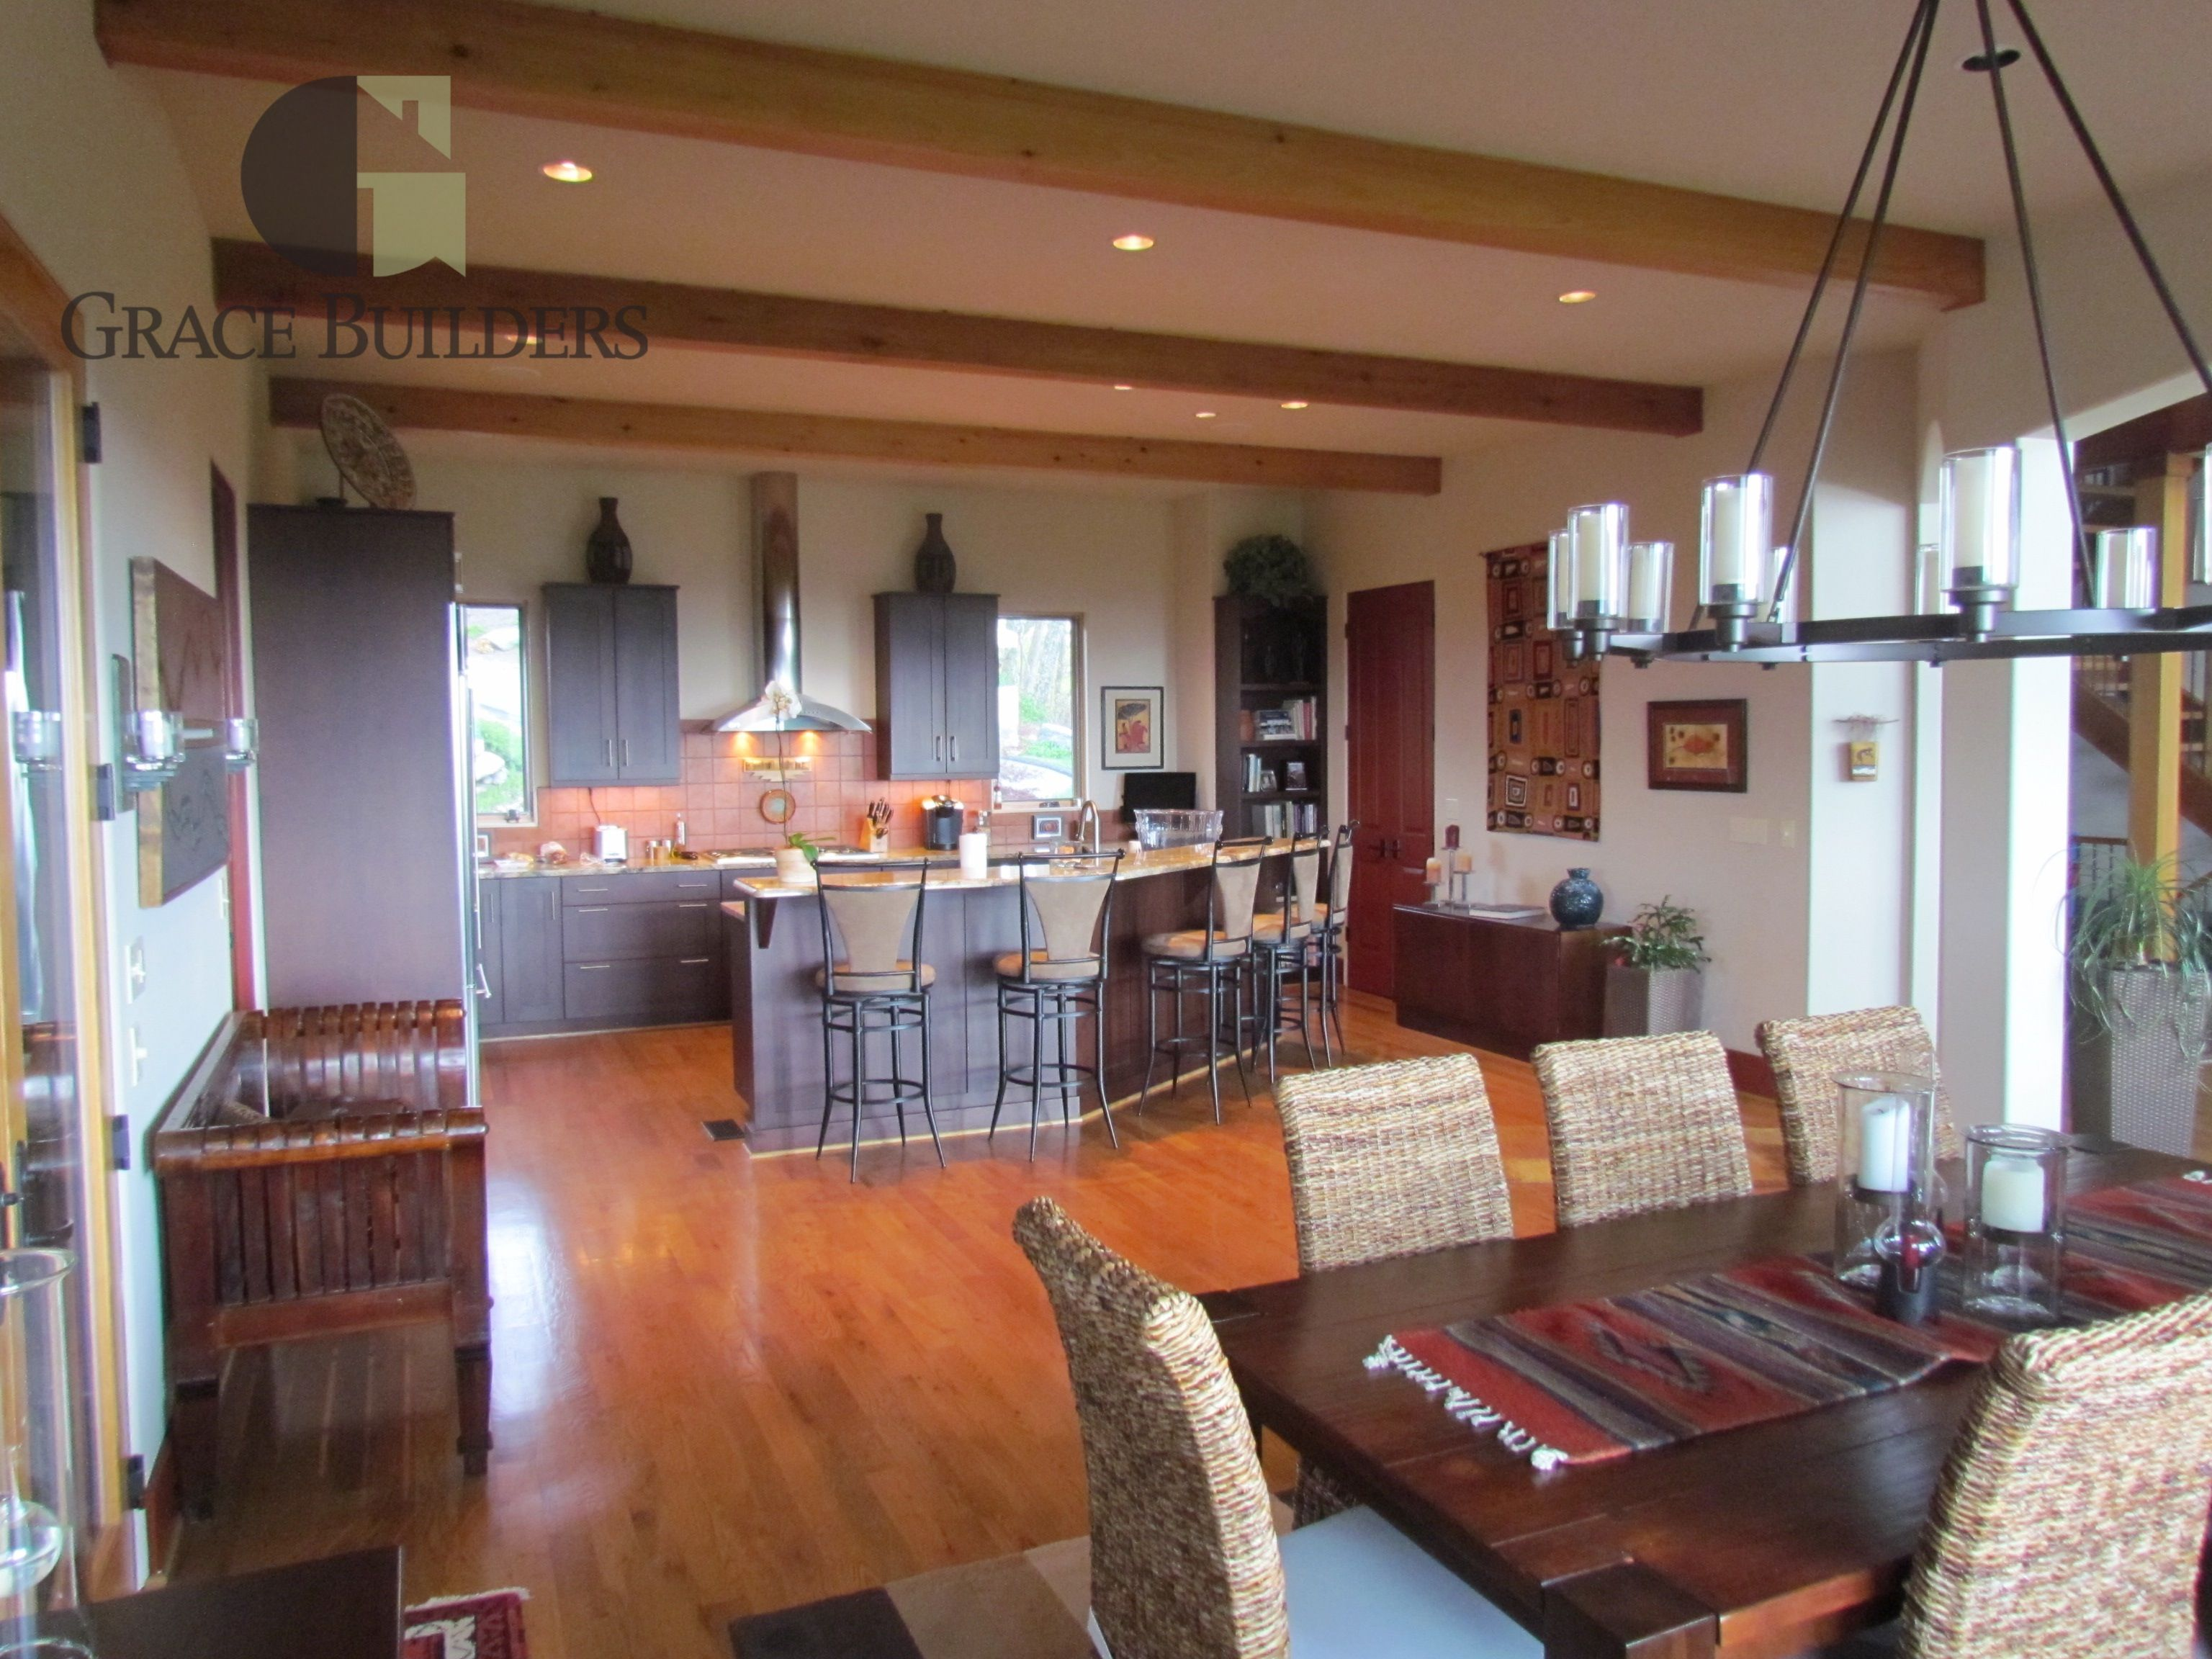 Grace Builders Interior, Kitchen, dining room, ceiling ...